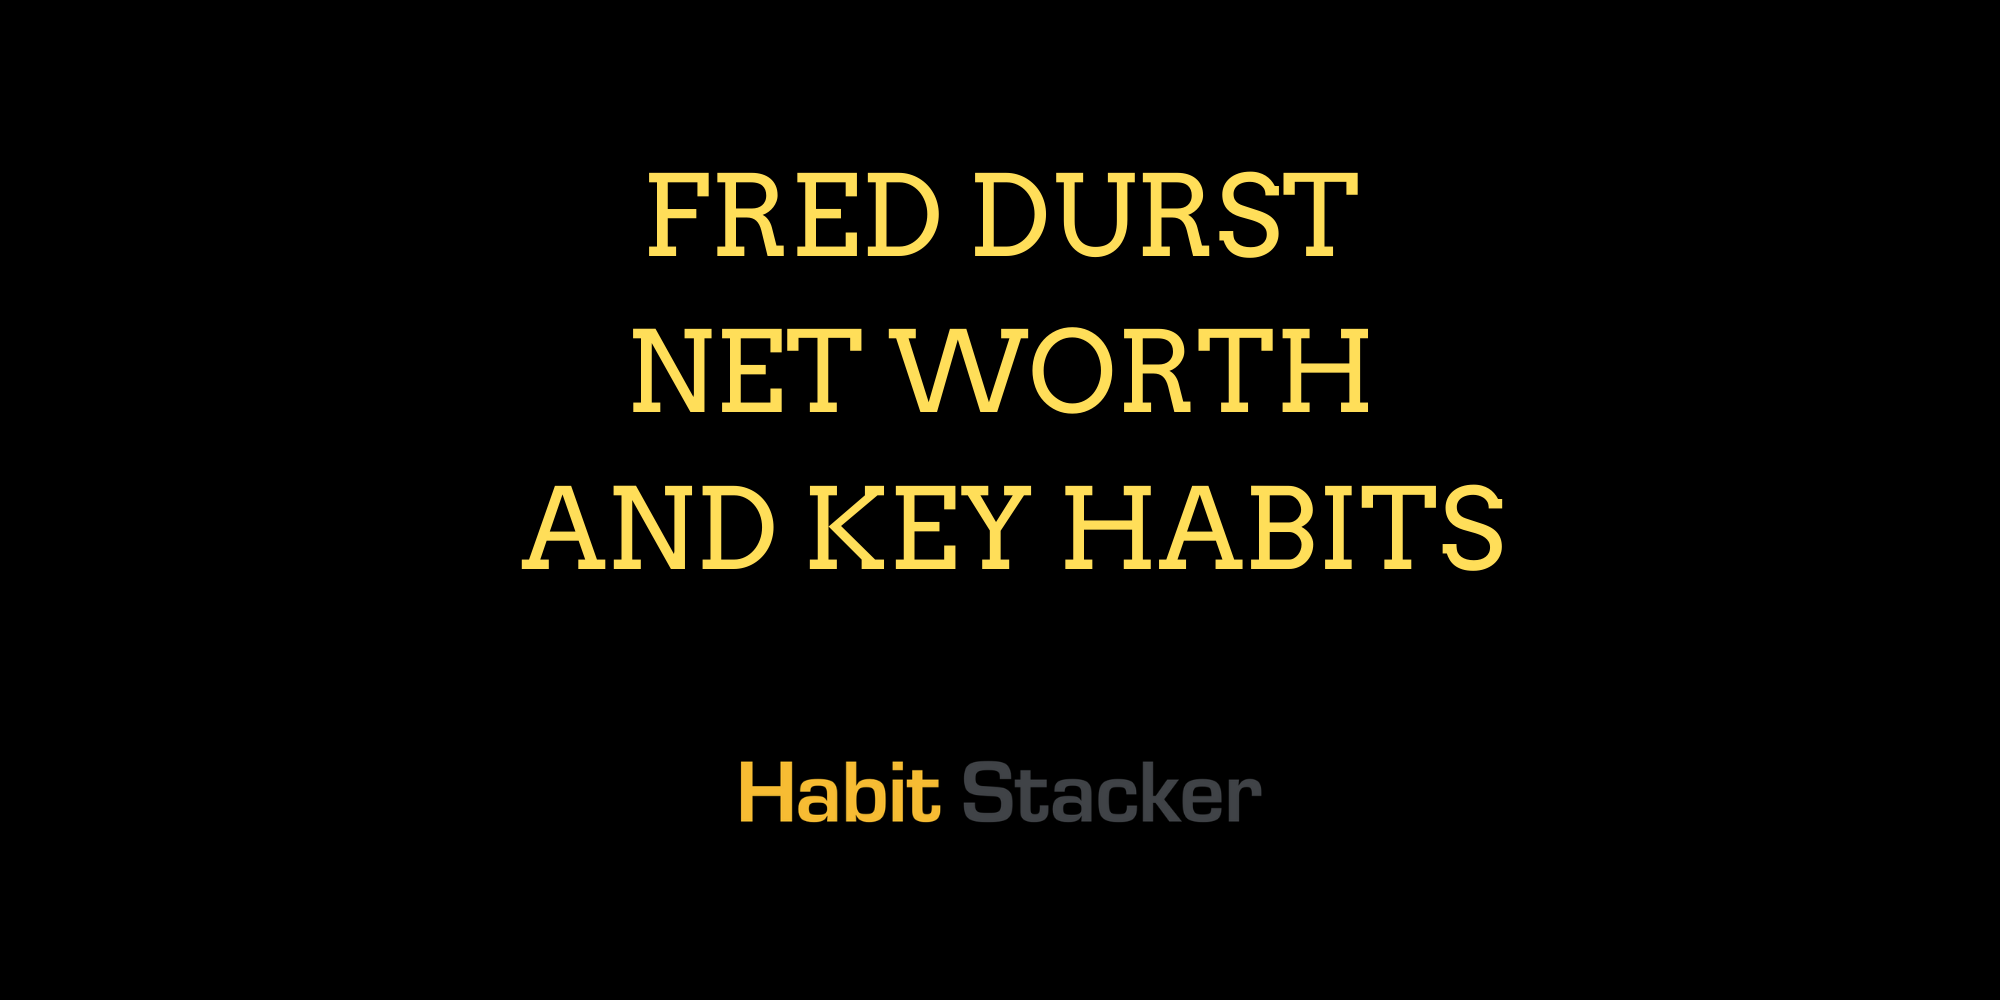 Fred Durst Net Worth and Key Habits